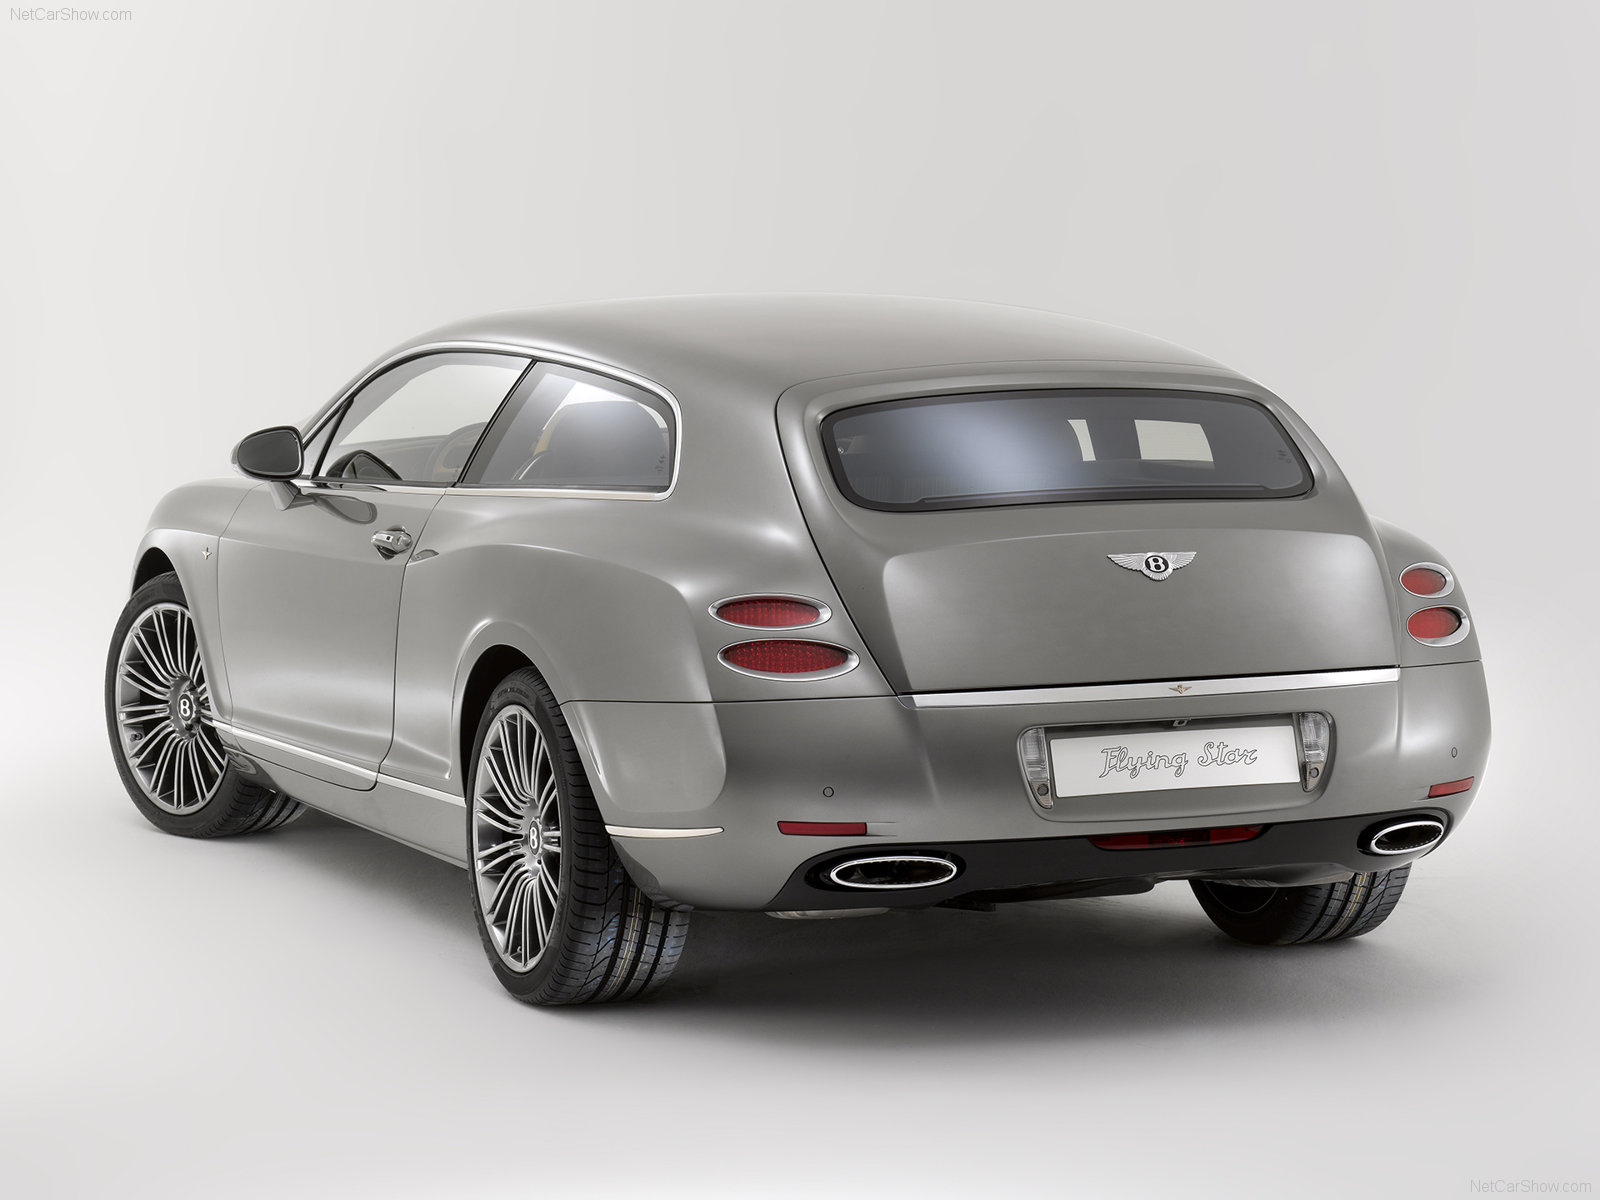 Bentley Continental Flying Star 2010 1600x1200 wallpaper 06 2010 Bentley Continental Flying Star